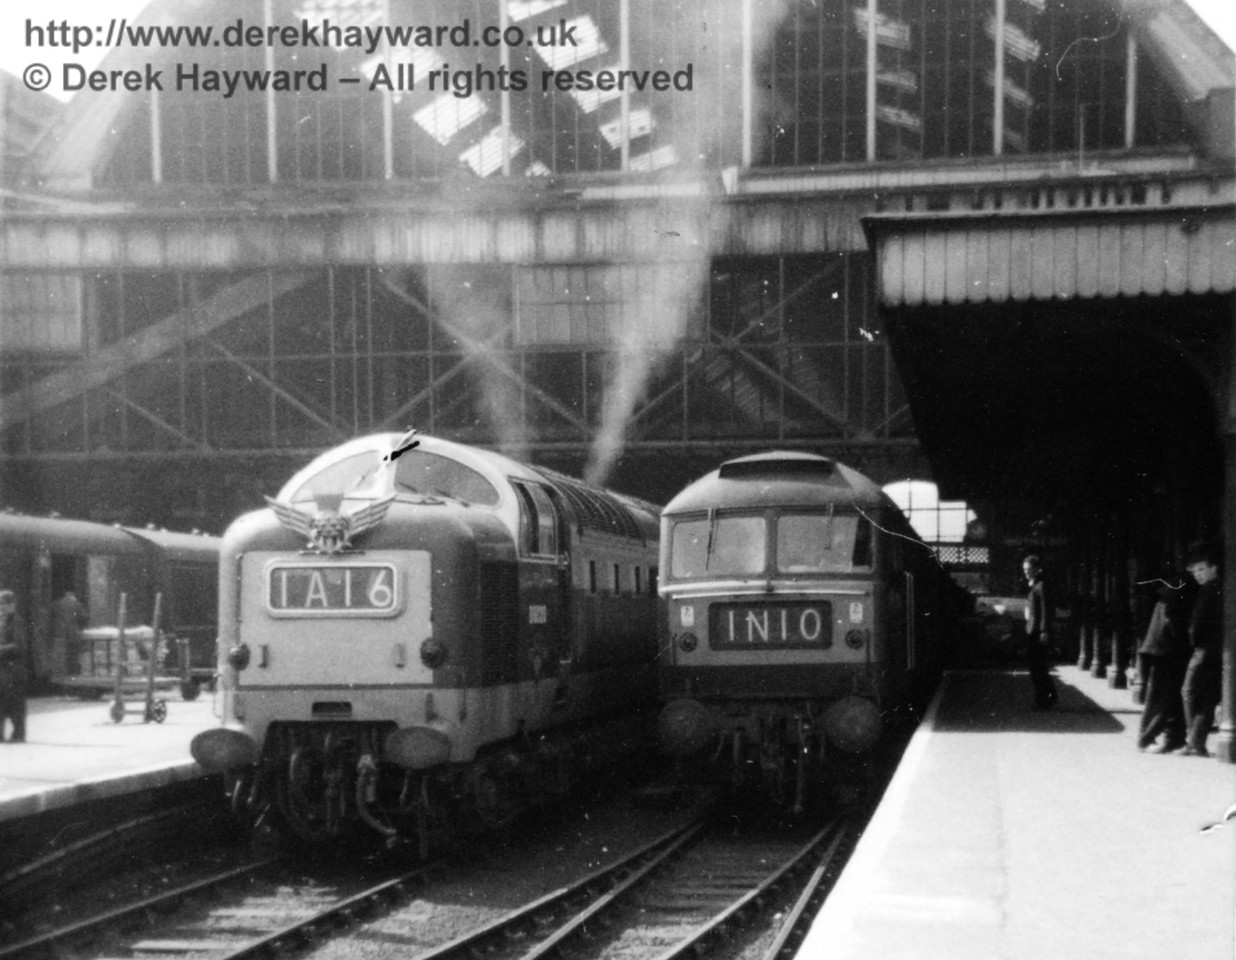 By way of a memory, an old grainy image, taken at Kings Cross in about 1970, when the Deltics were in main line service and the Flying Scotsman was just leaving.  Unfortunately the locomotives are unidentified.